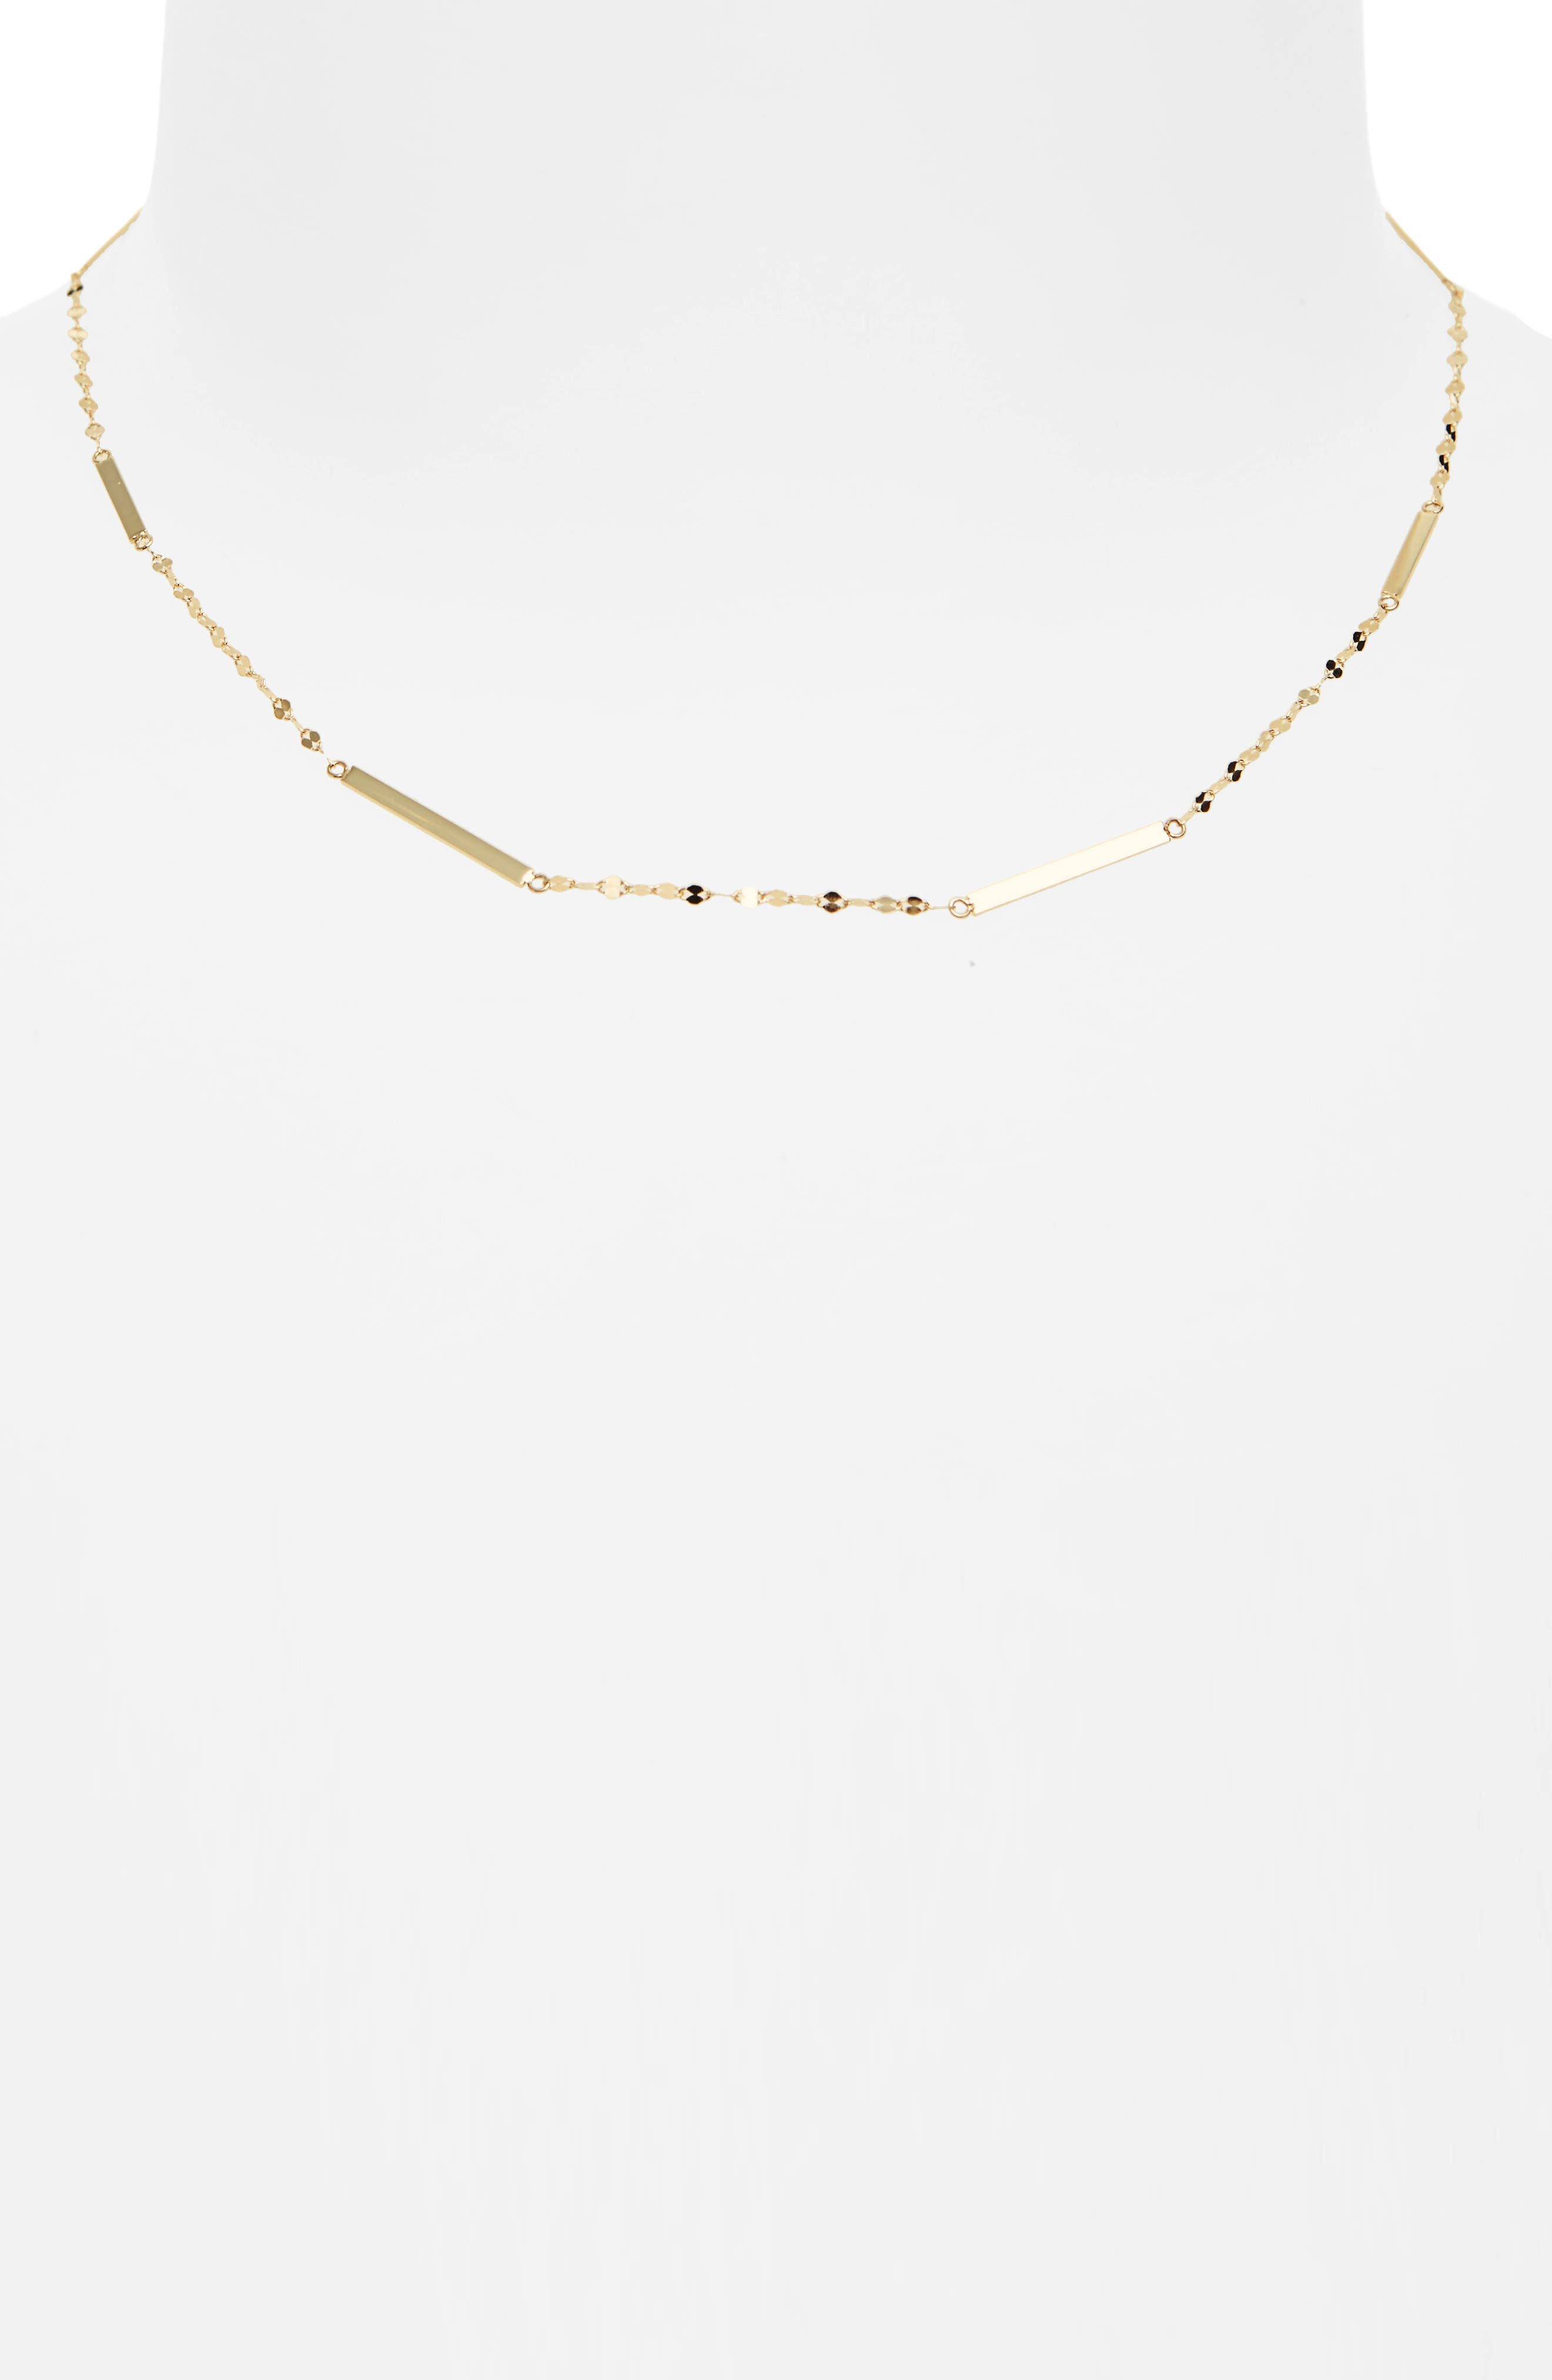 Short Bar Station Necklace,                         Main,                         color, YELLOW GOLD